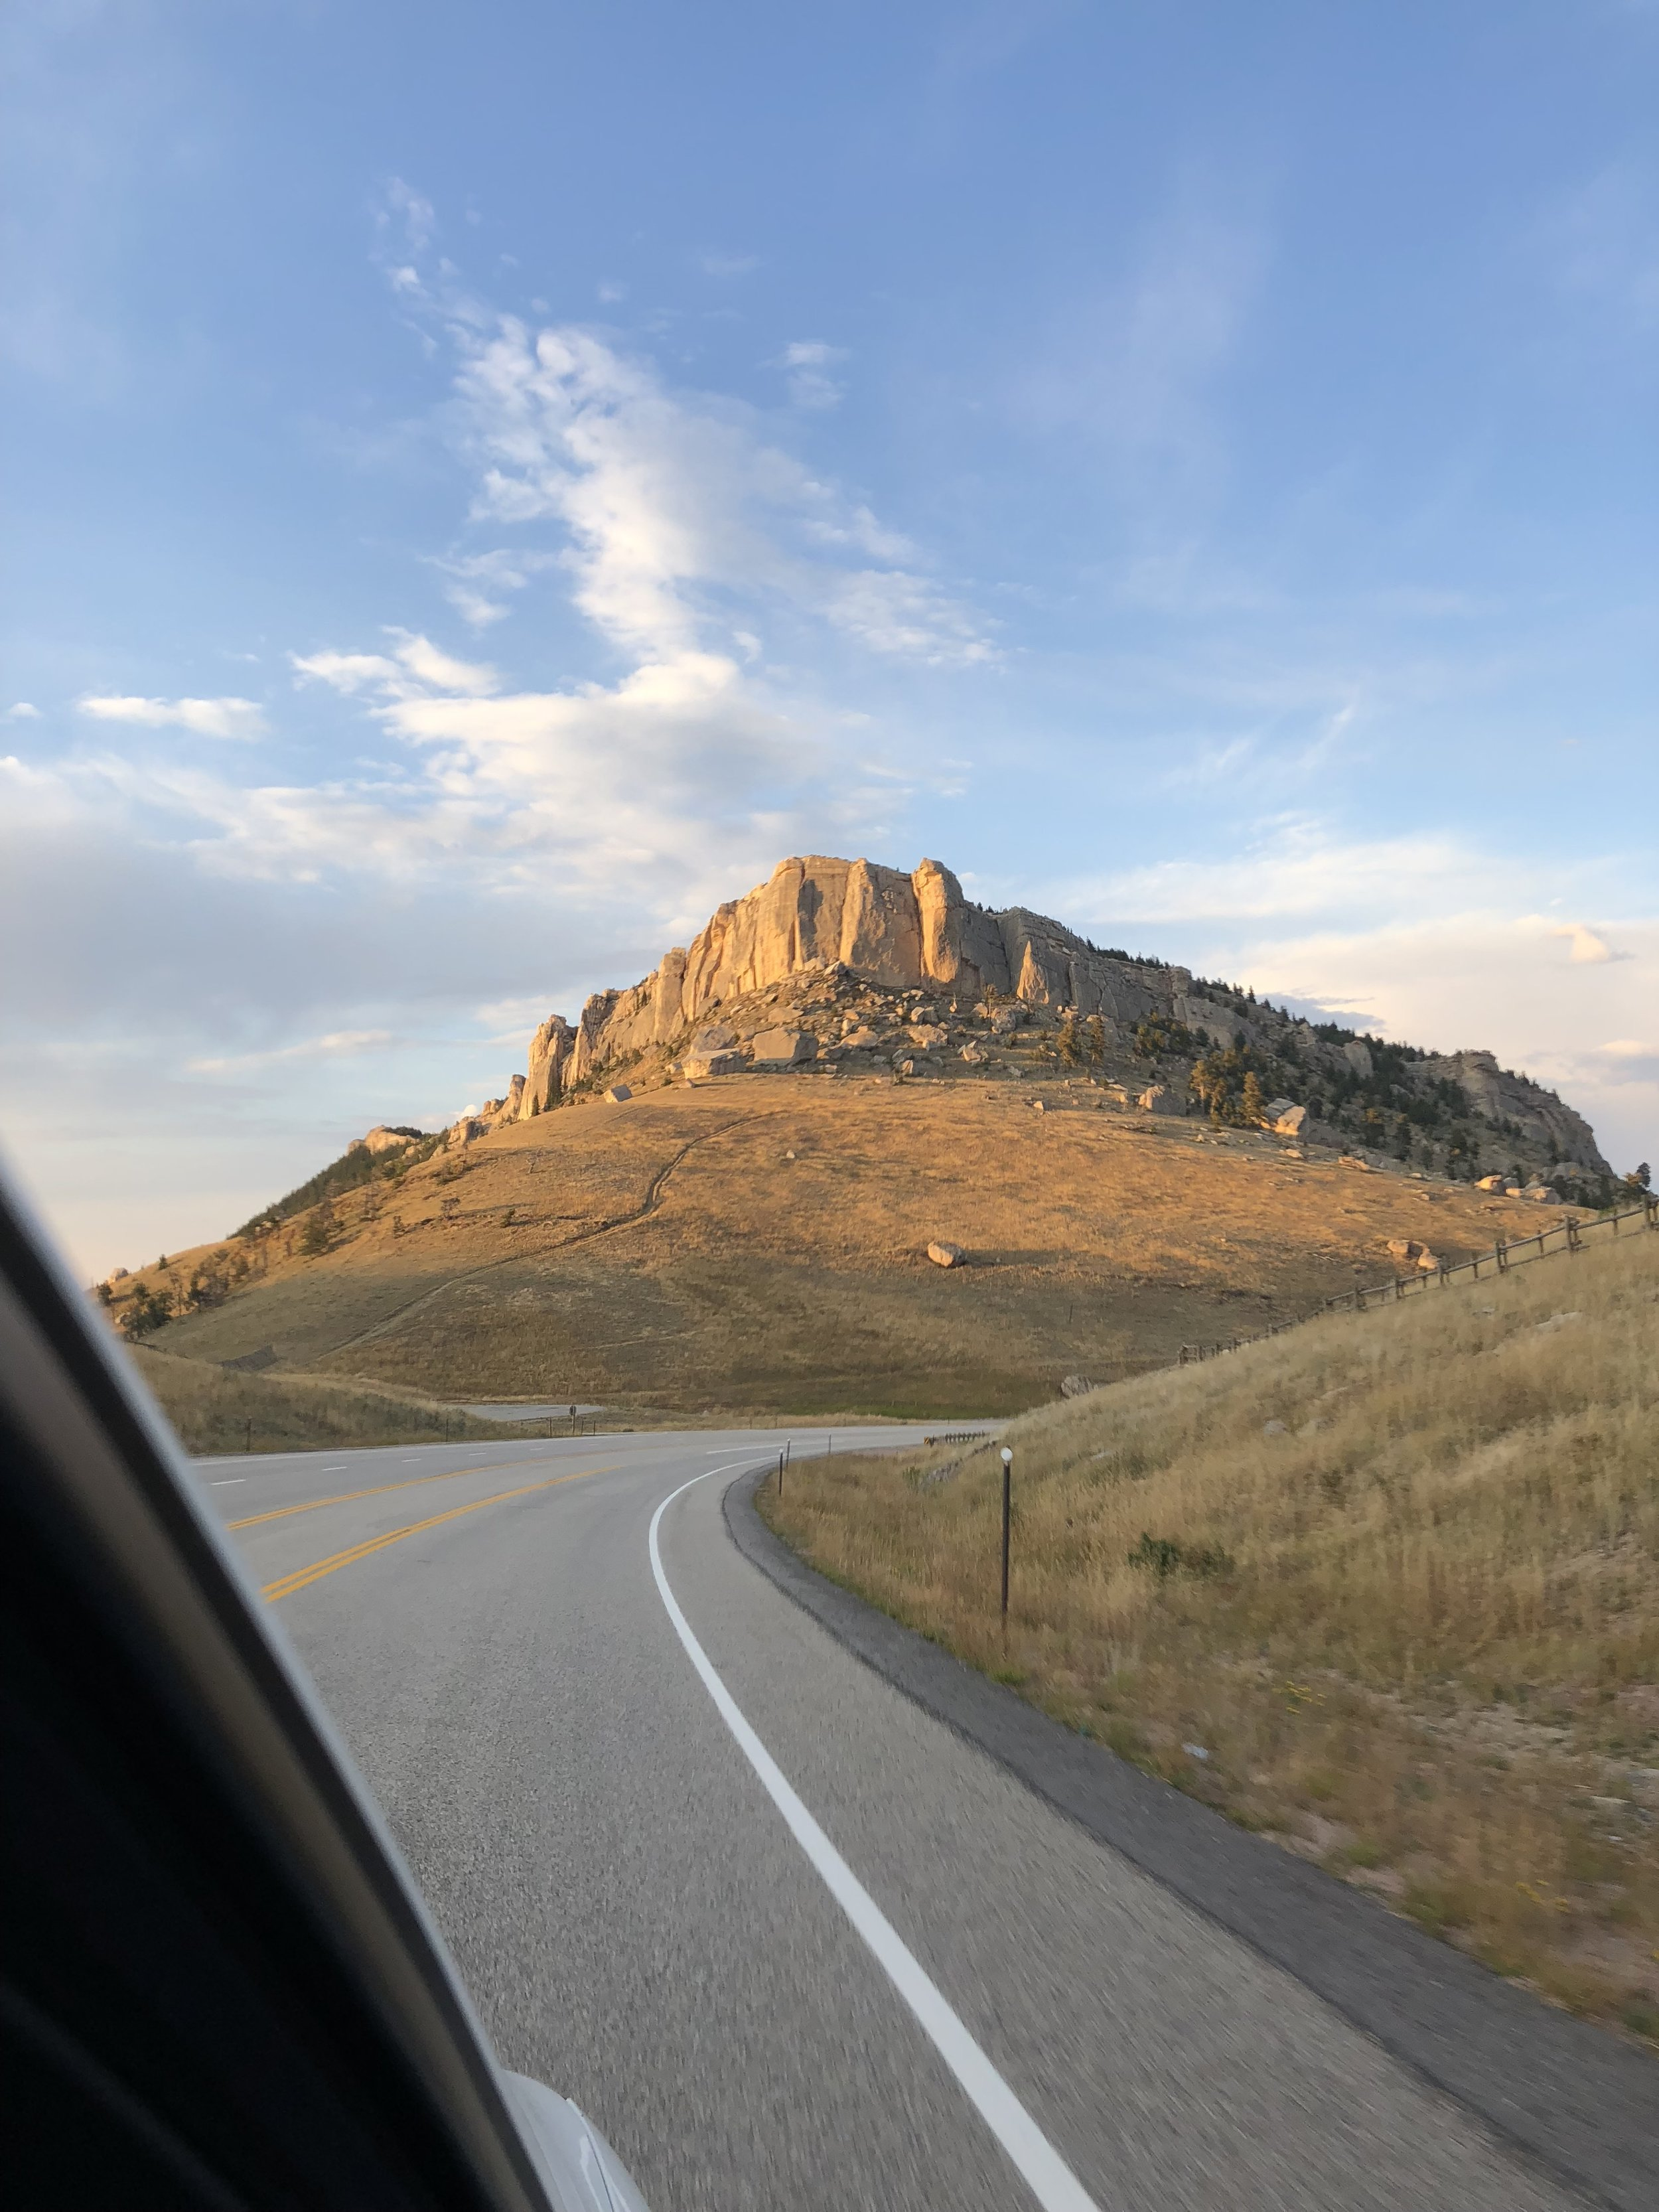 Time flies by with these views. Driving through Wyoming.